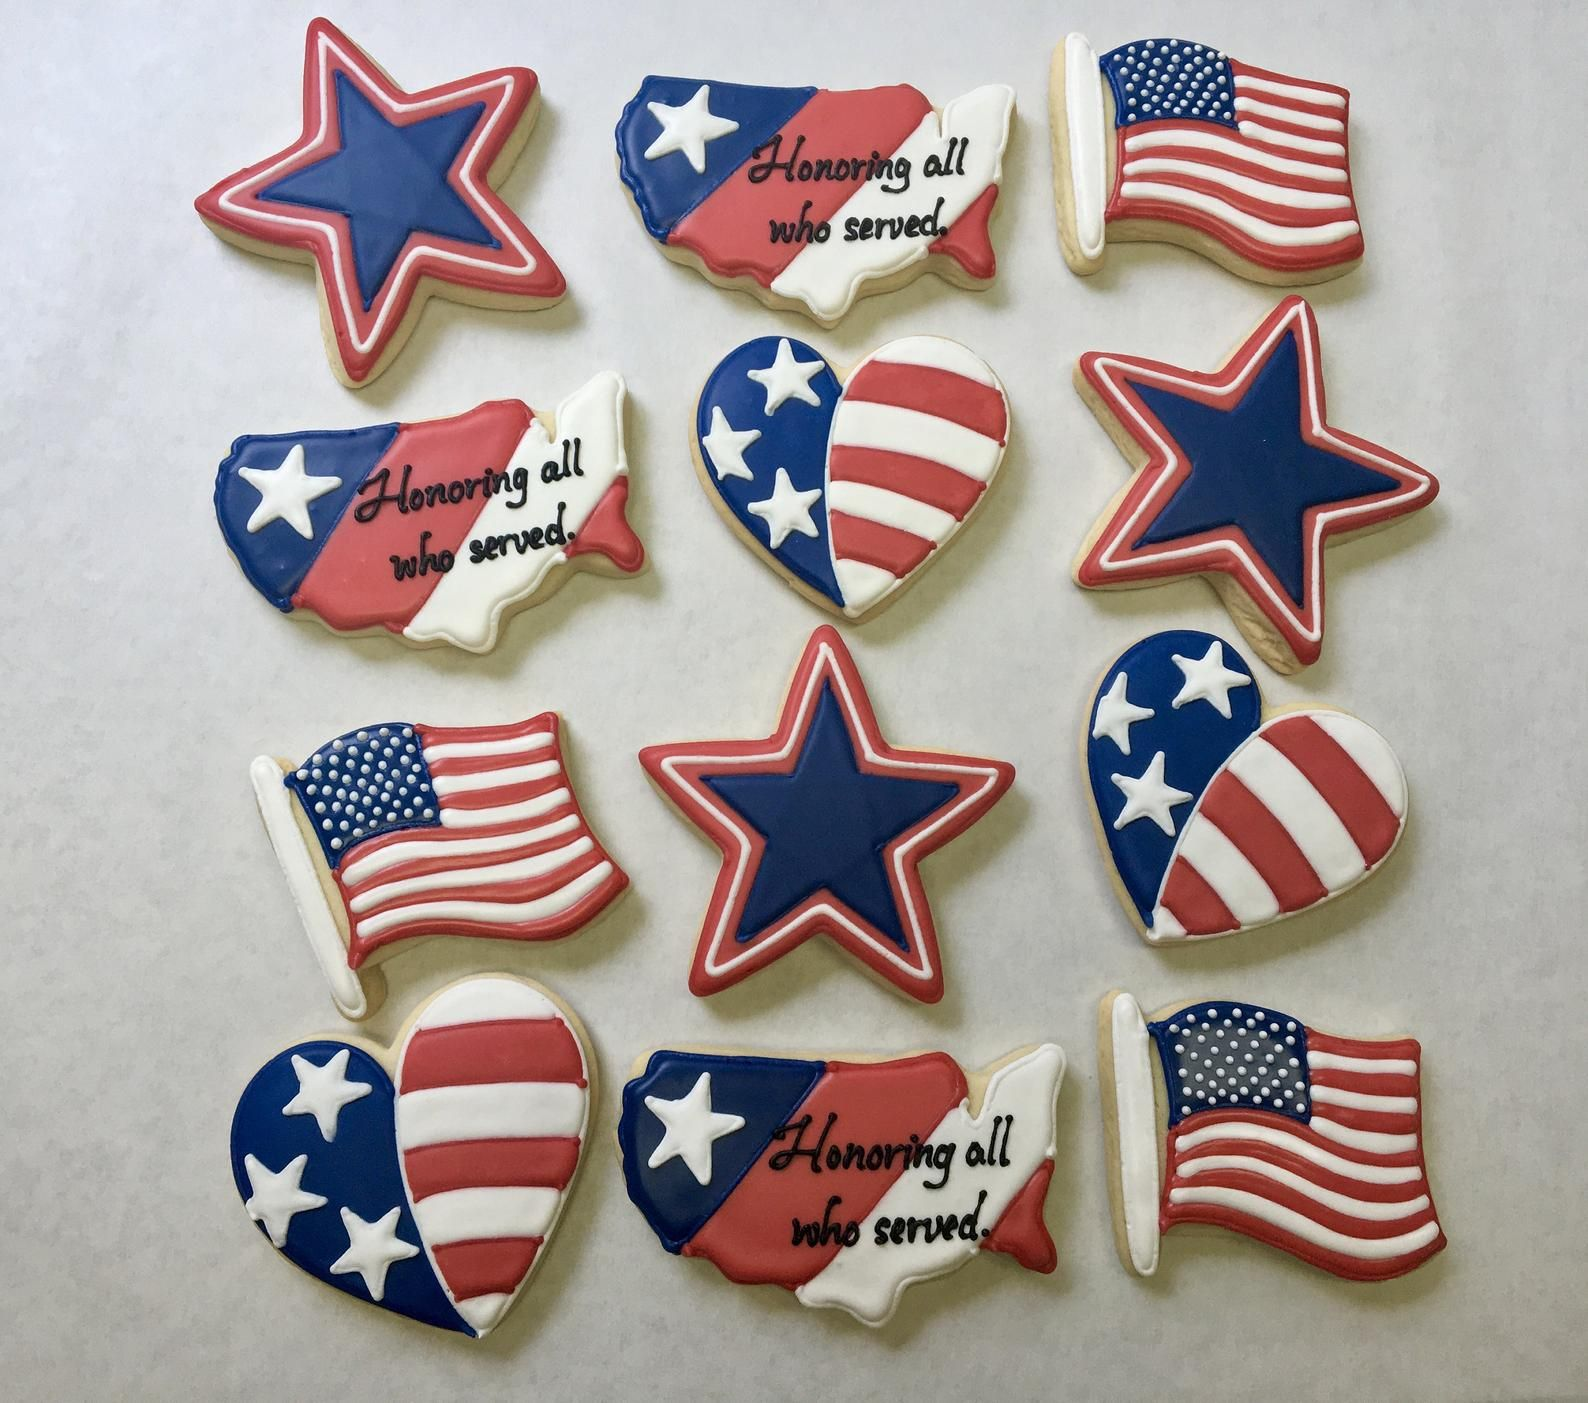 Veterans Day Cookies, Great Veterans Day Party Favors, Patriotic Cookies, American Flag Cookies, Memorial Day Theme Party Favors